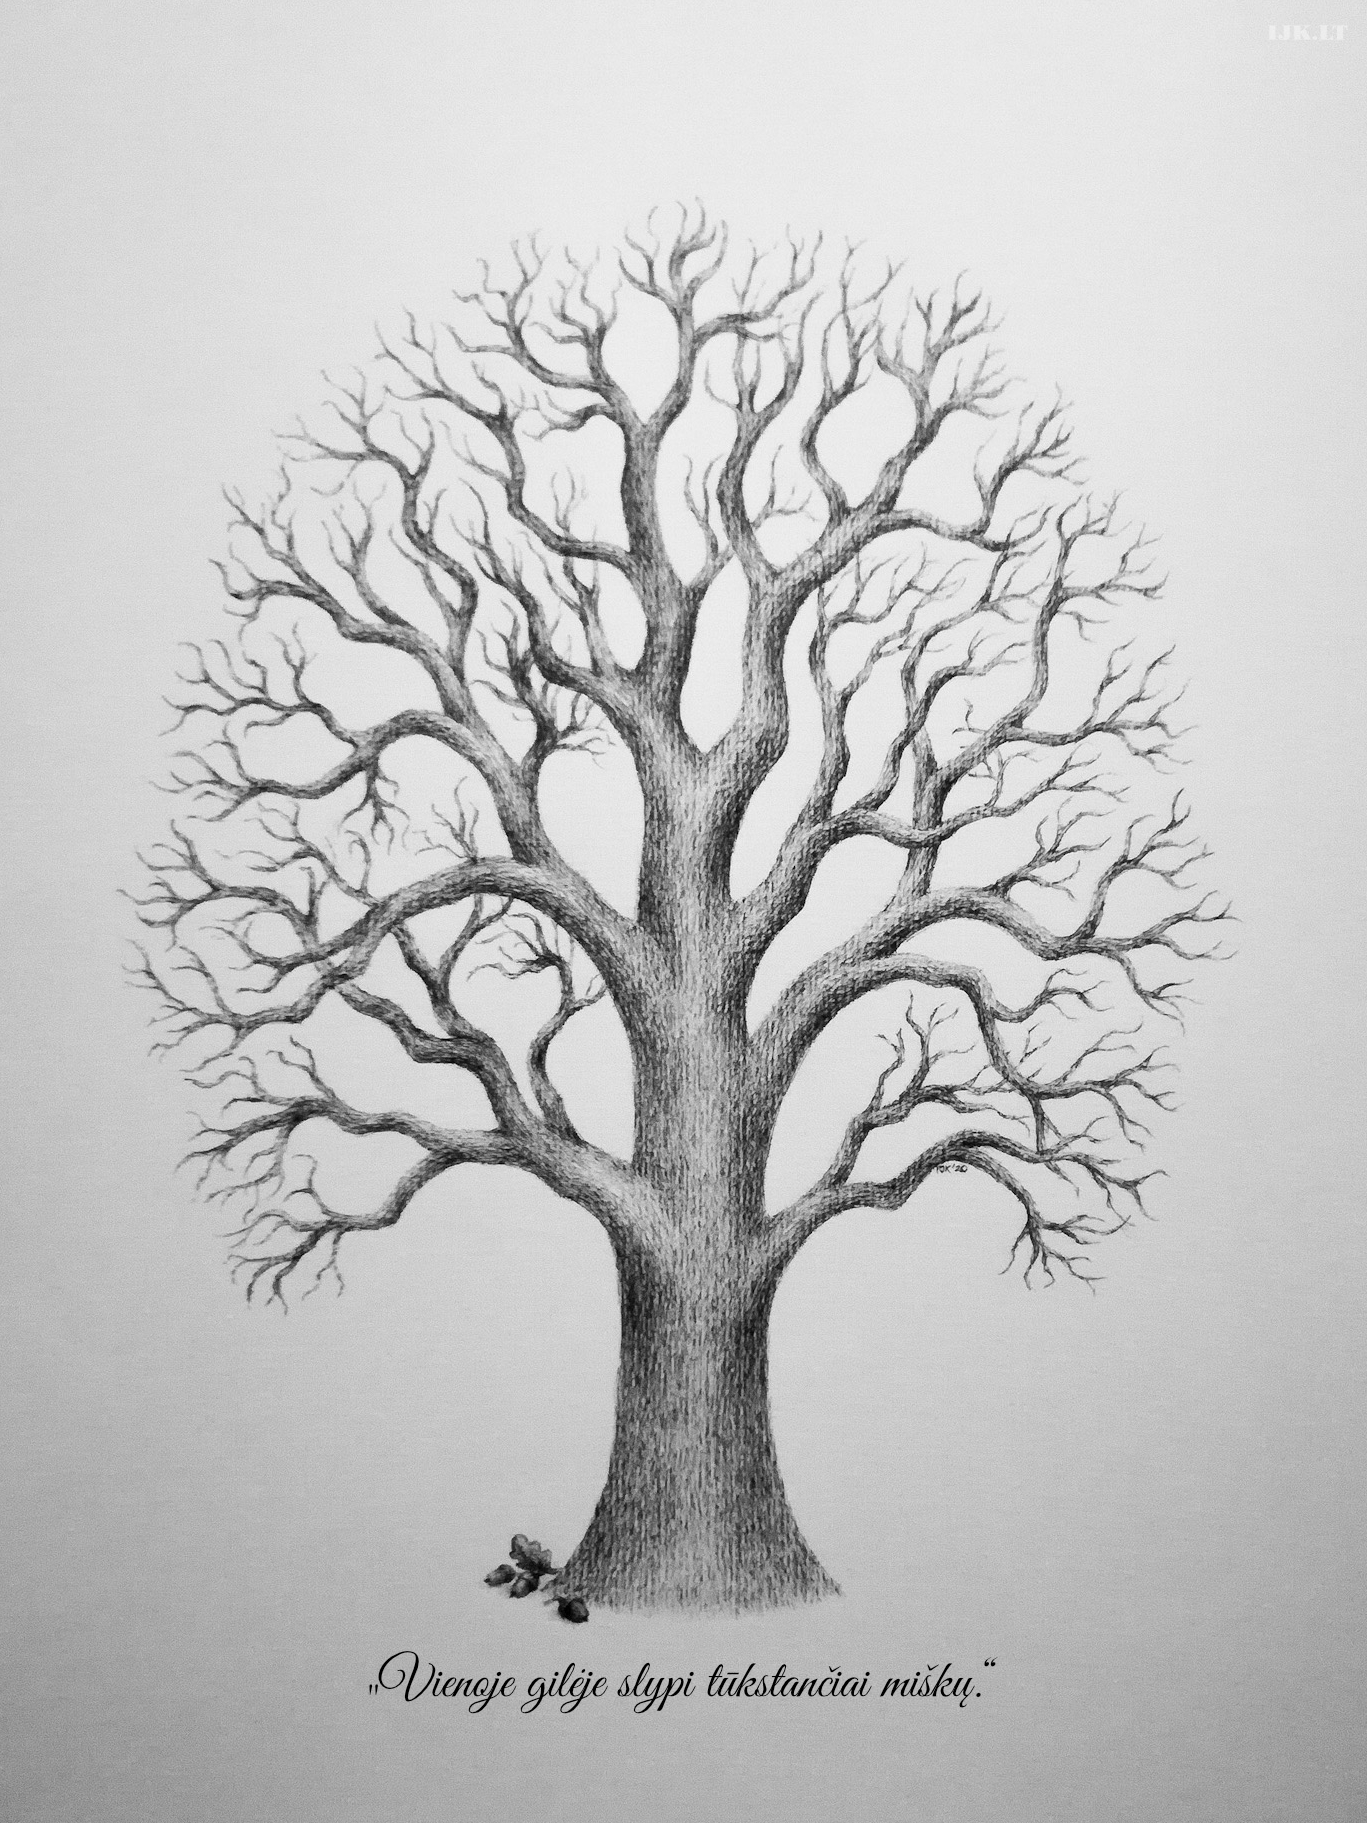 Picture for guests fingerprints and wishes, tree, oak, quote, alternative guest book